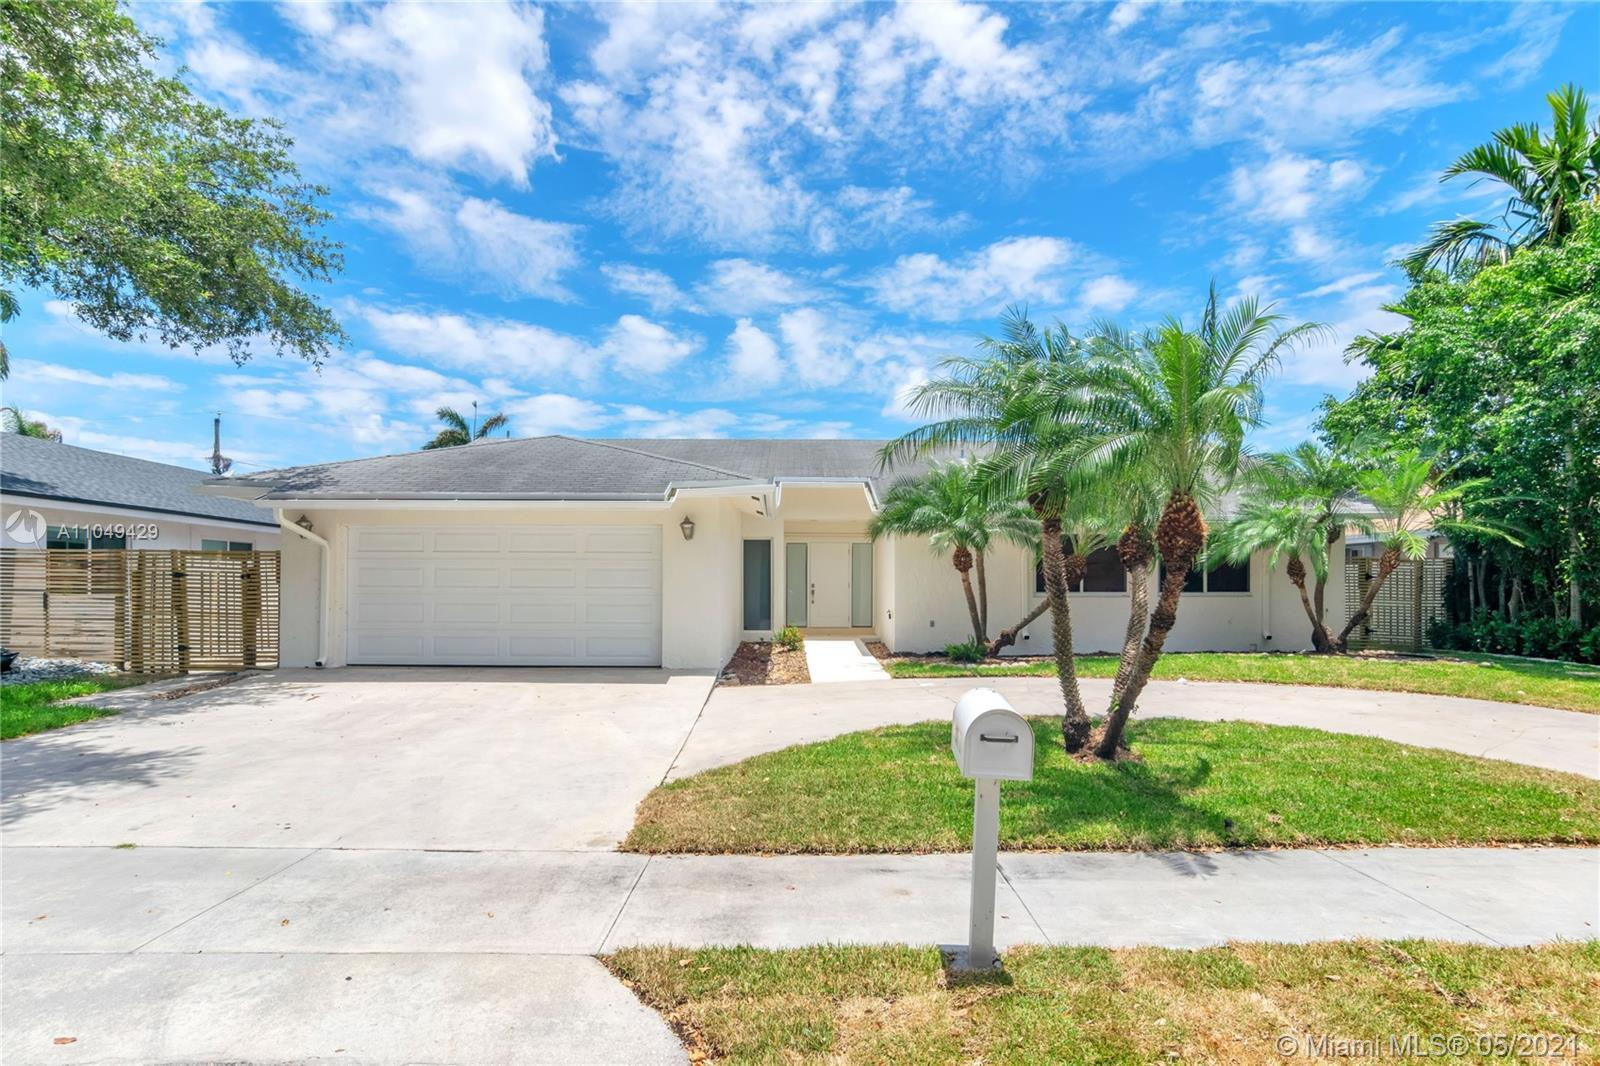 Welcome Home! A true gem located in the highly sought after Hollywood Gardens neighborhood, this hom